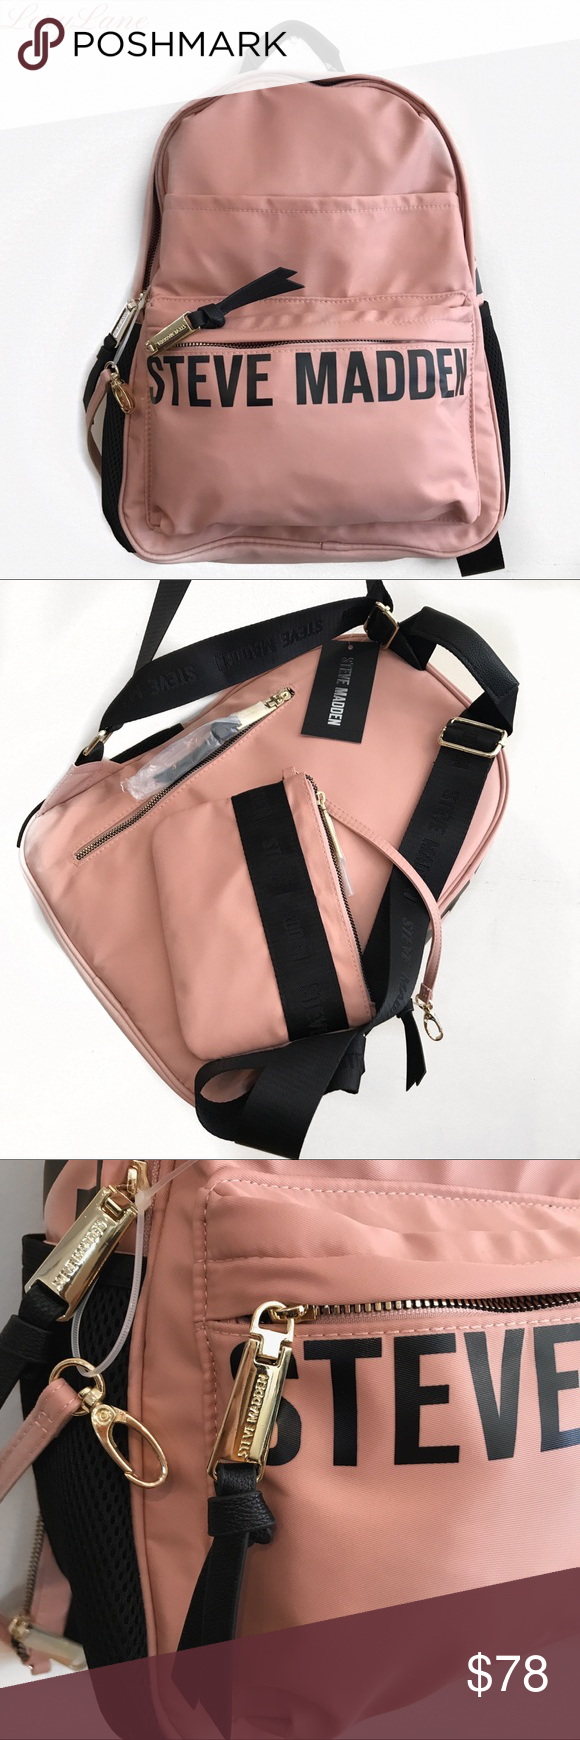 b2339aeb0c23 STEVE MADDEN PINK BACKPACK 🔥🔥🔥 Hot!🔥🔥🔥 Cute pink backpack by ...